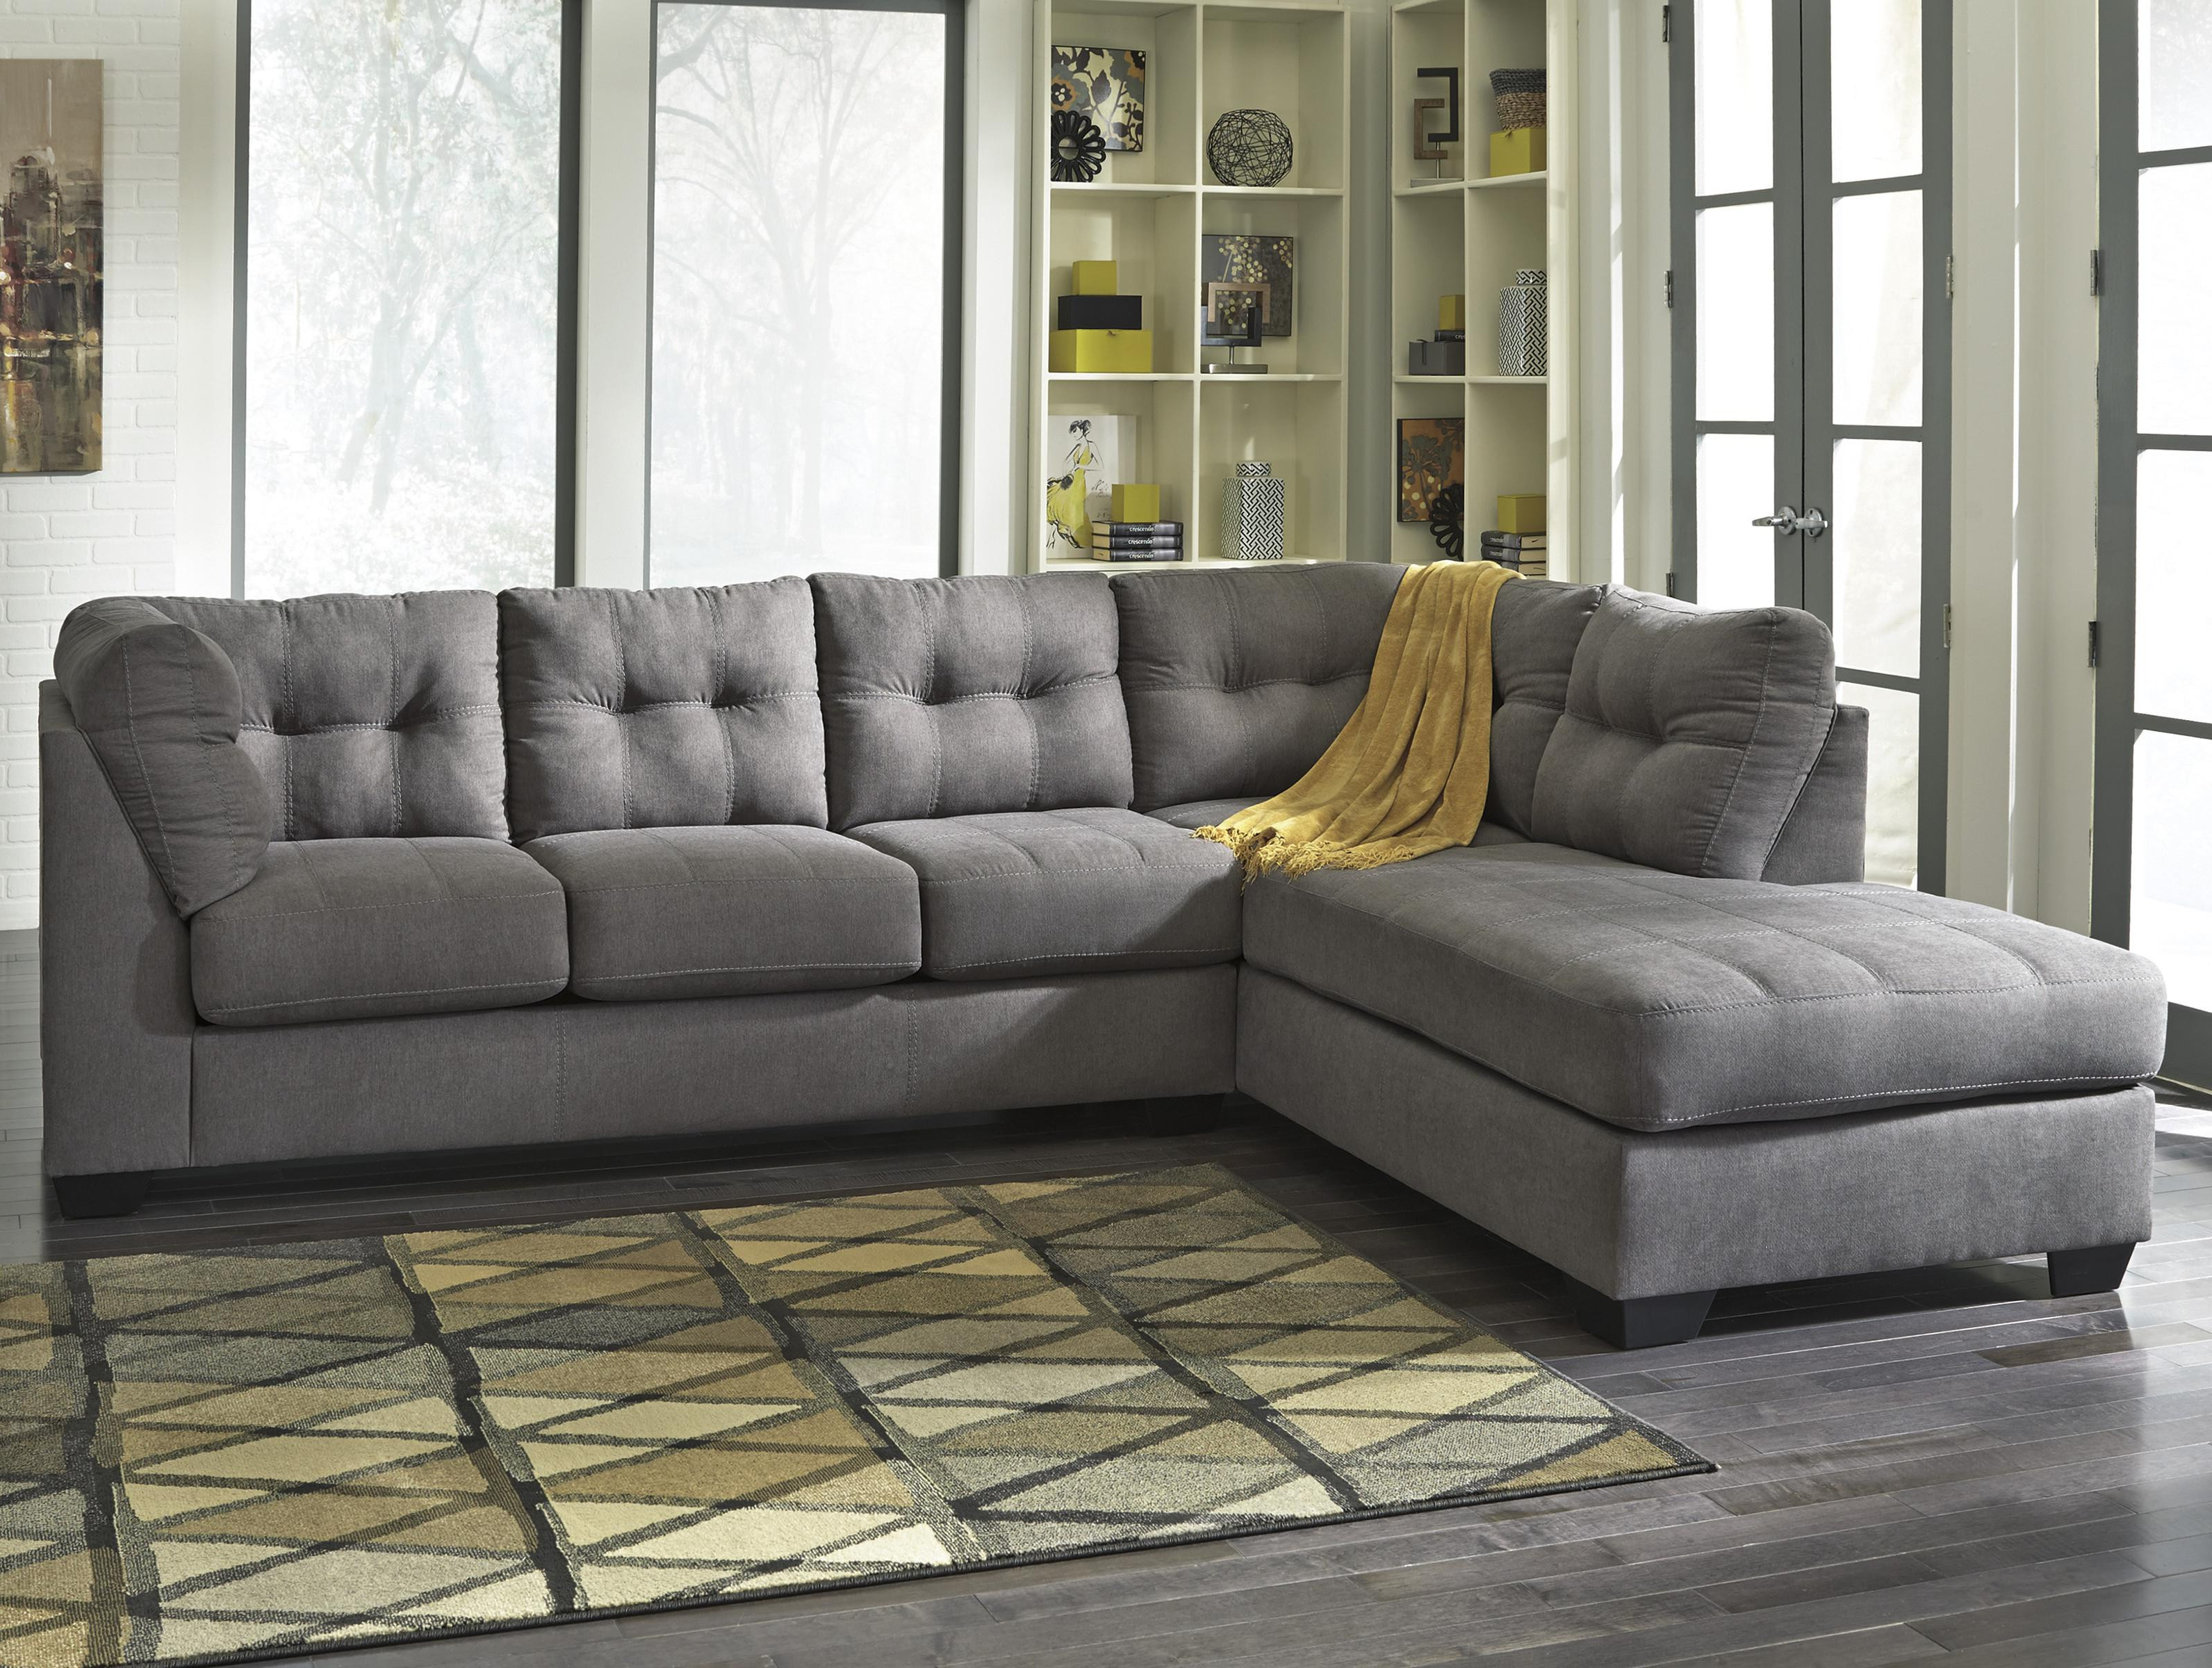 Favorite New 2 Piece Sectional With Chaise Lounge – Buildsimplehome Throughout Kerri 2 Piece Sectionals With Raf Chaise (View 18 of 20)